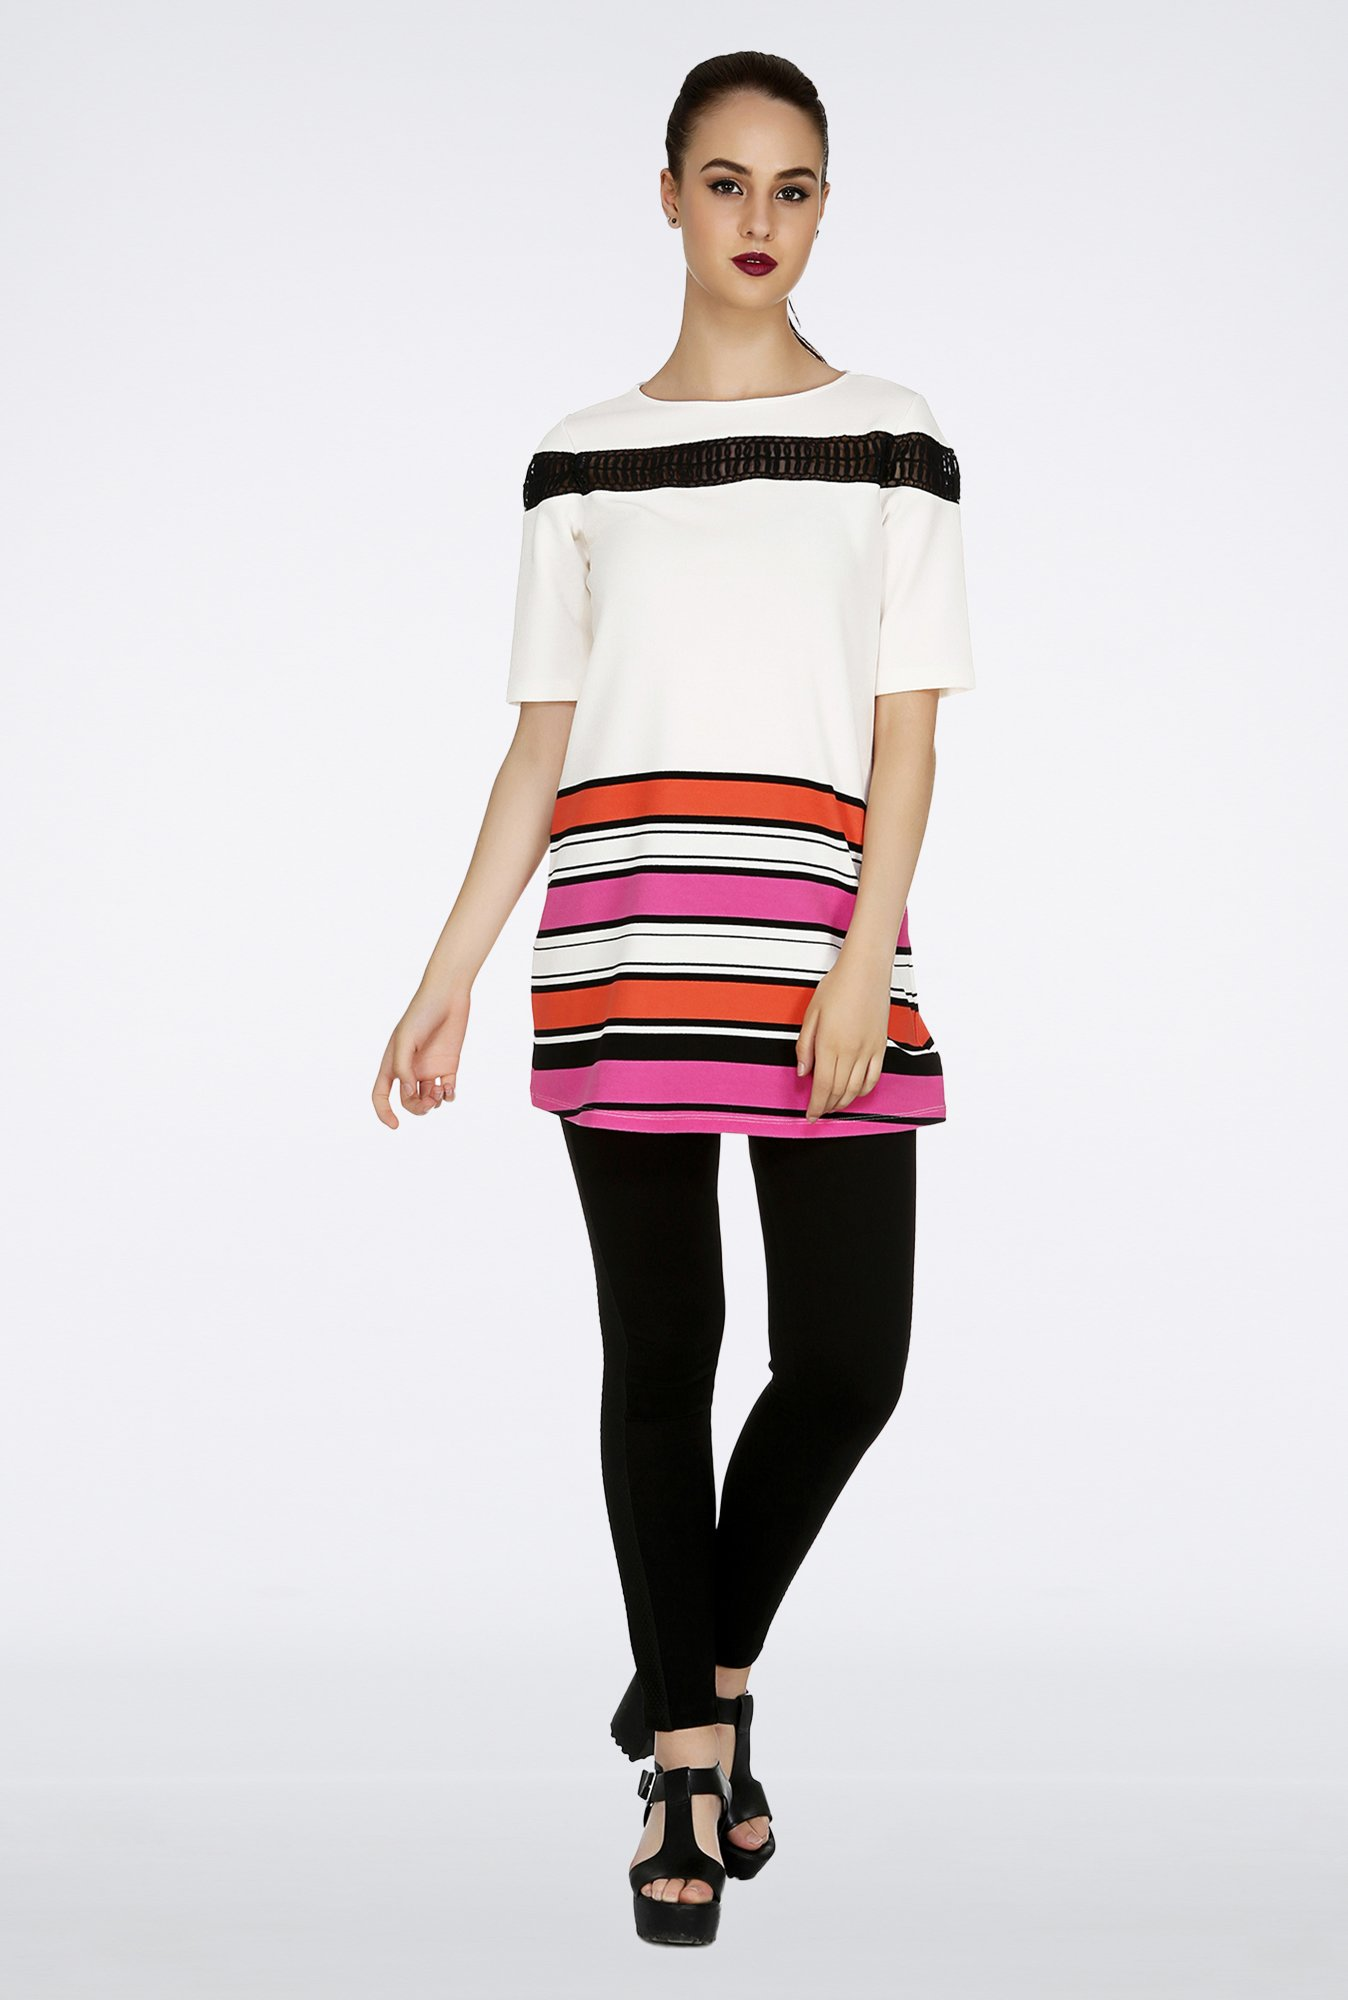 109 F Off-White Striped Tunic